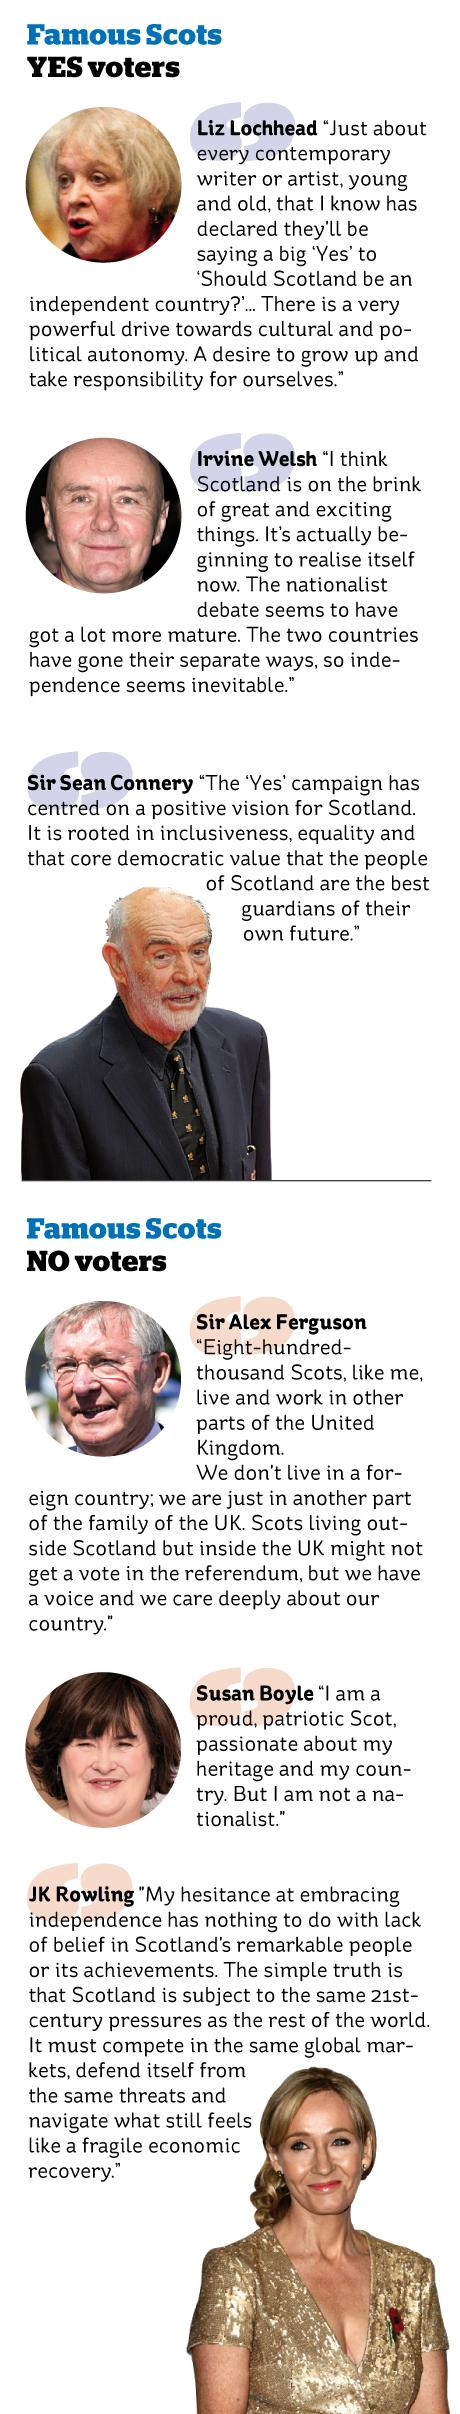 Famous-scots-YES-NO.jpg